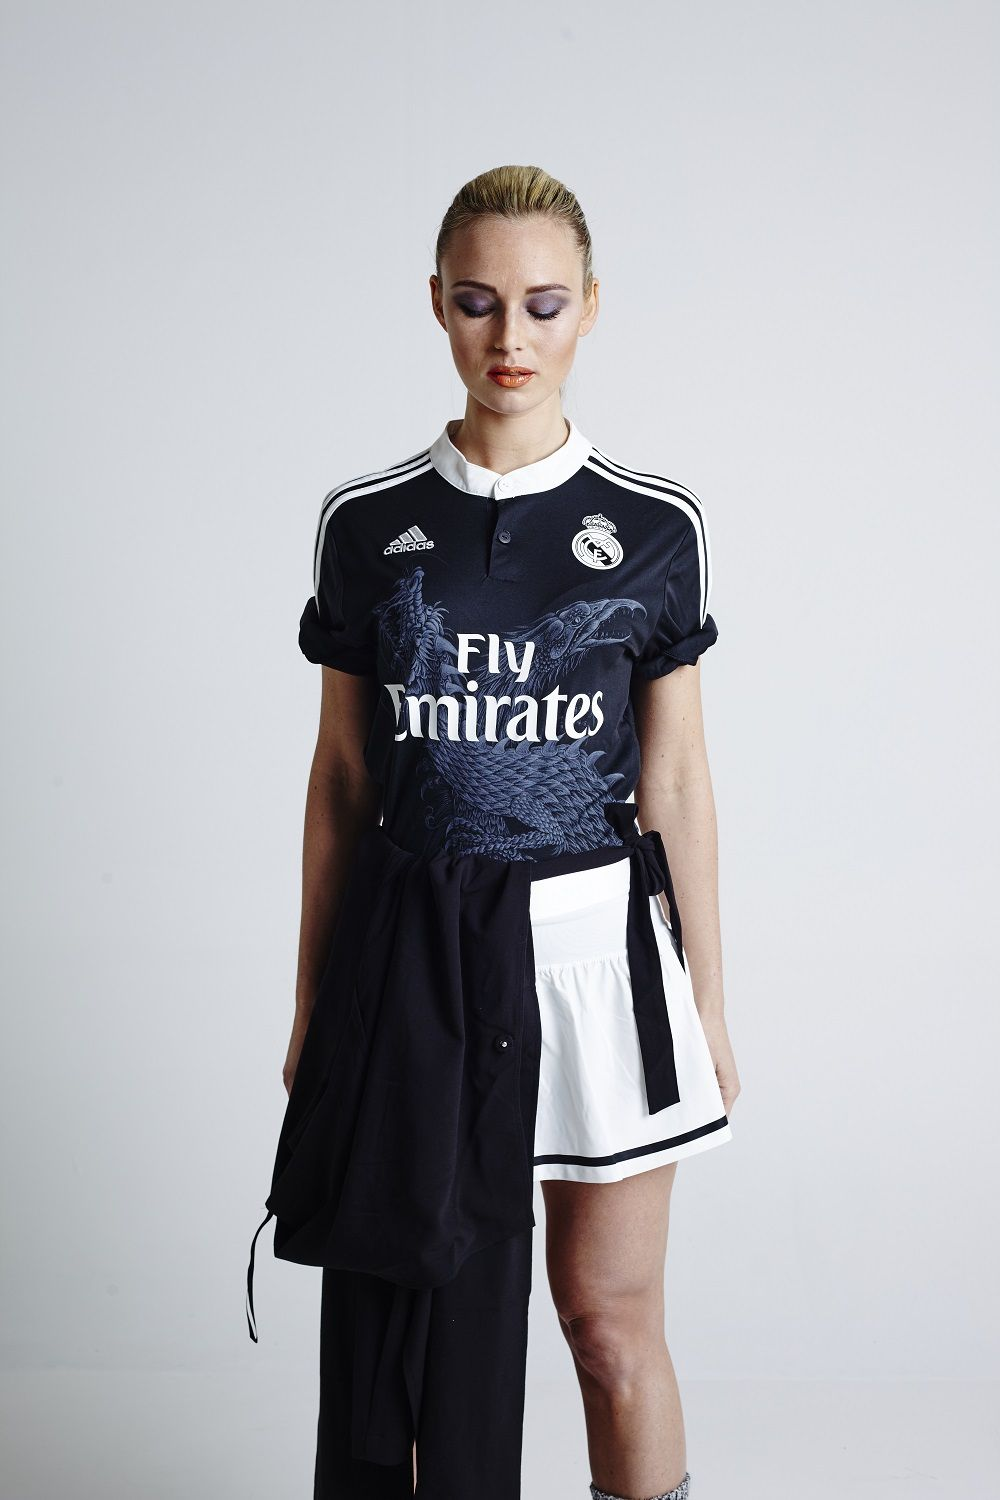 Real Madrid Soccer Jerseys Rm Custom Jerseys Ronaldo 7 Bale 11 James 10 Printing Madrid Girl Football Fashion Jersey Fashion